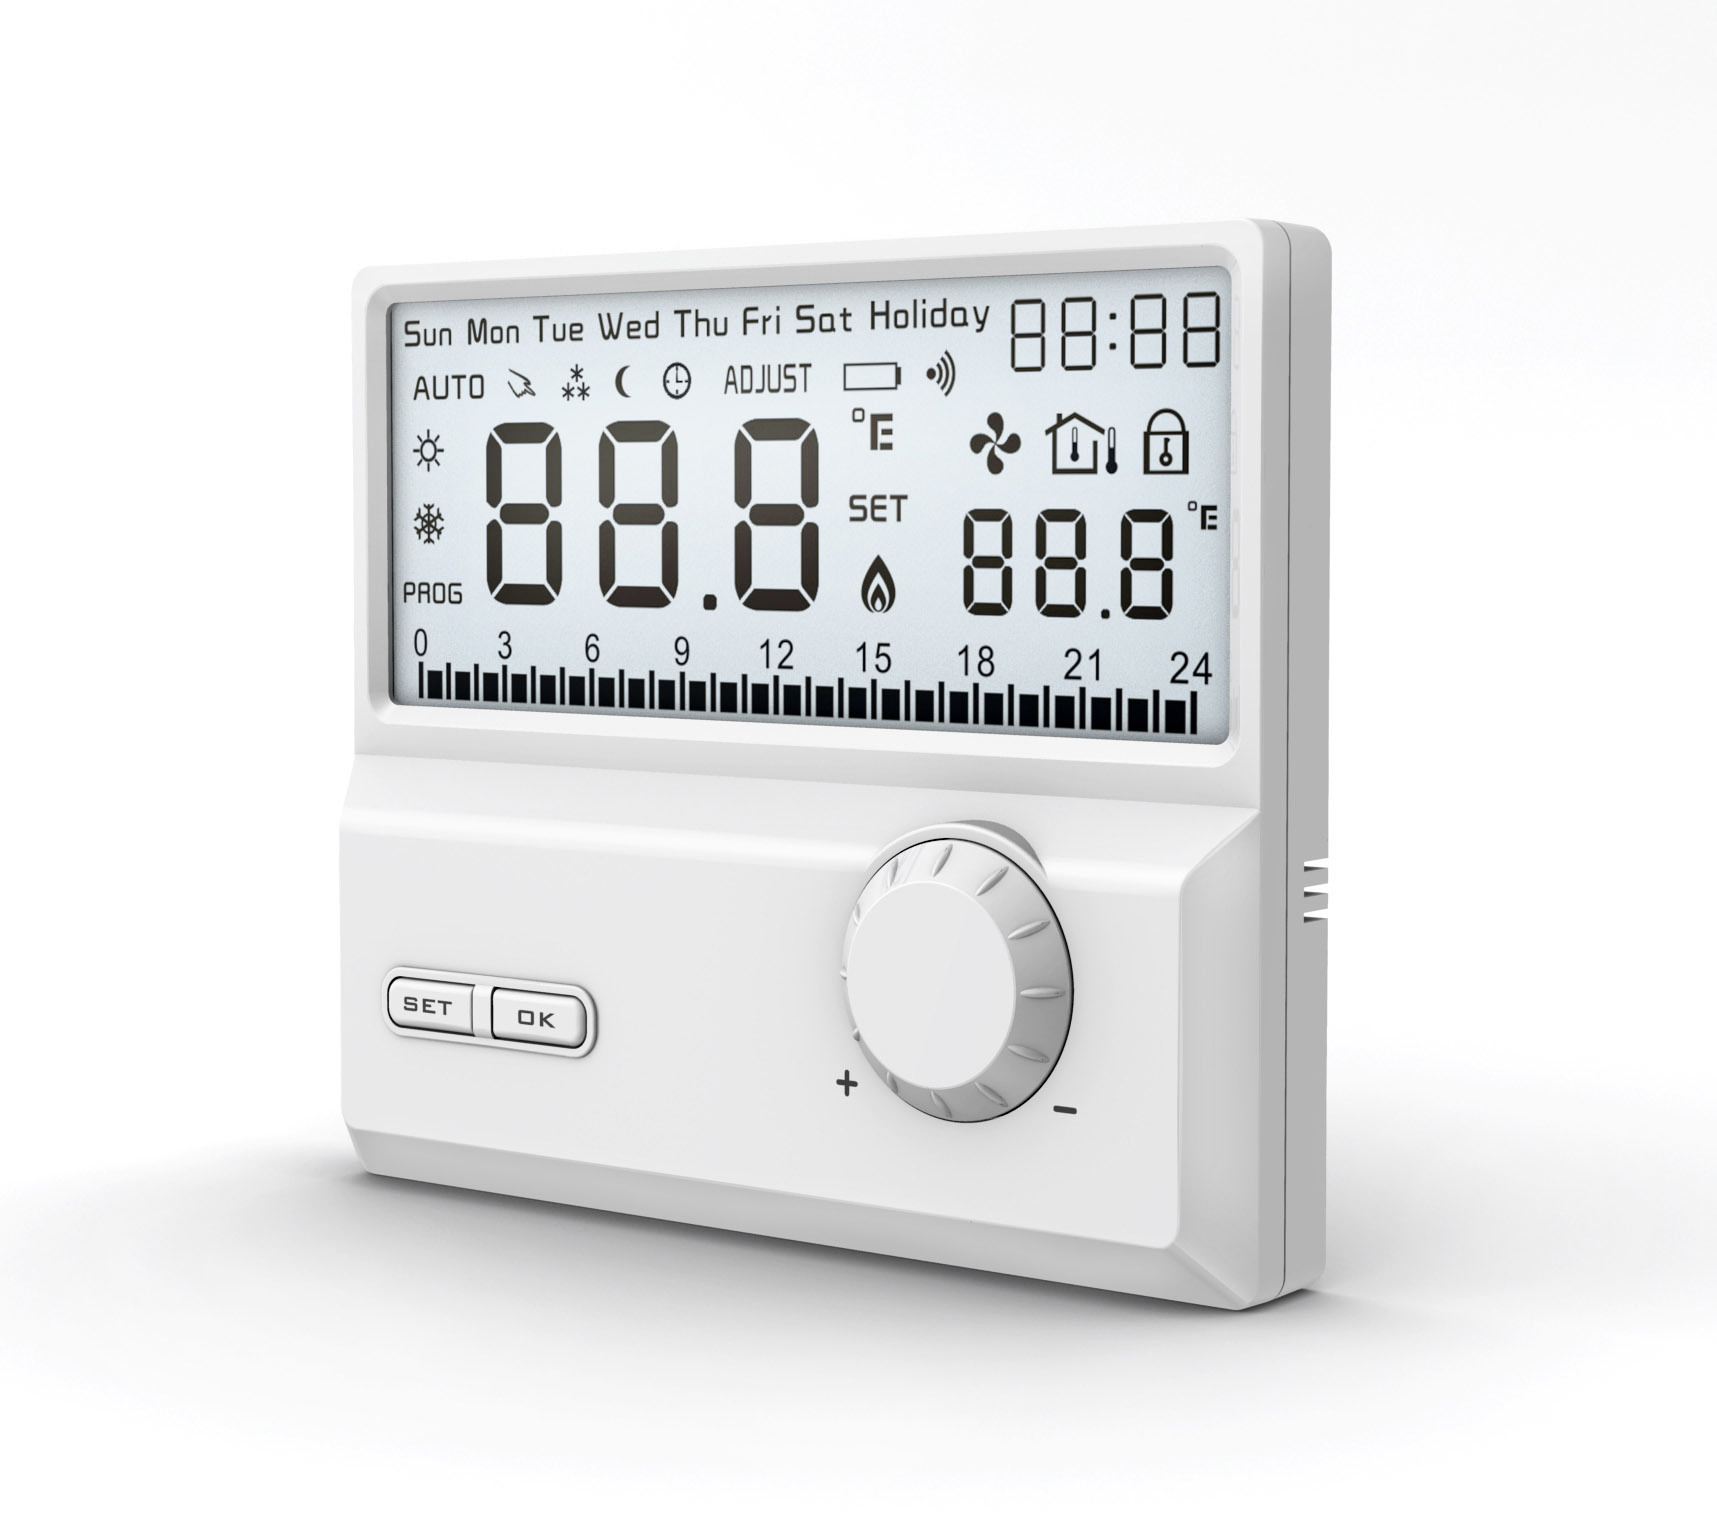 Digital Thermostat China Digital Thermostat Programmable Thermostat #60666B